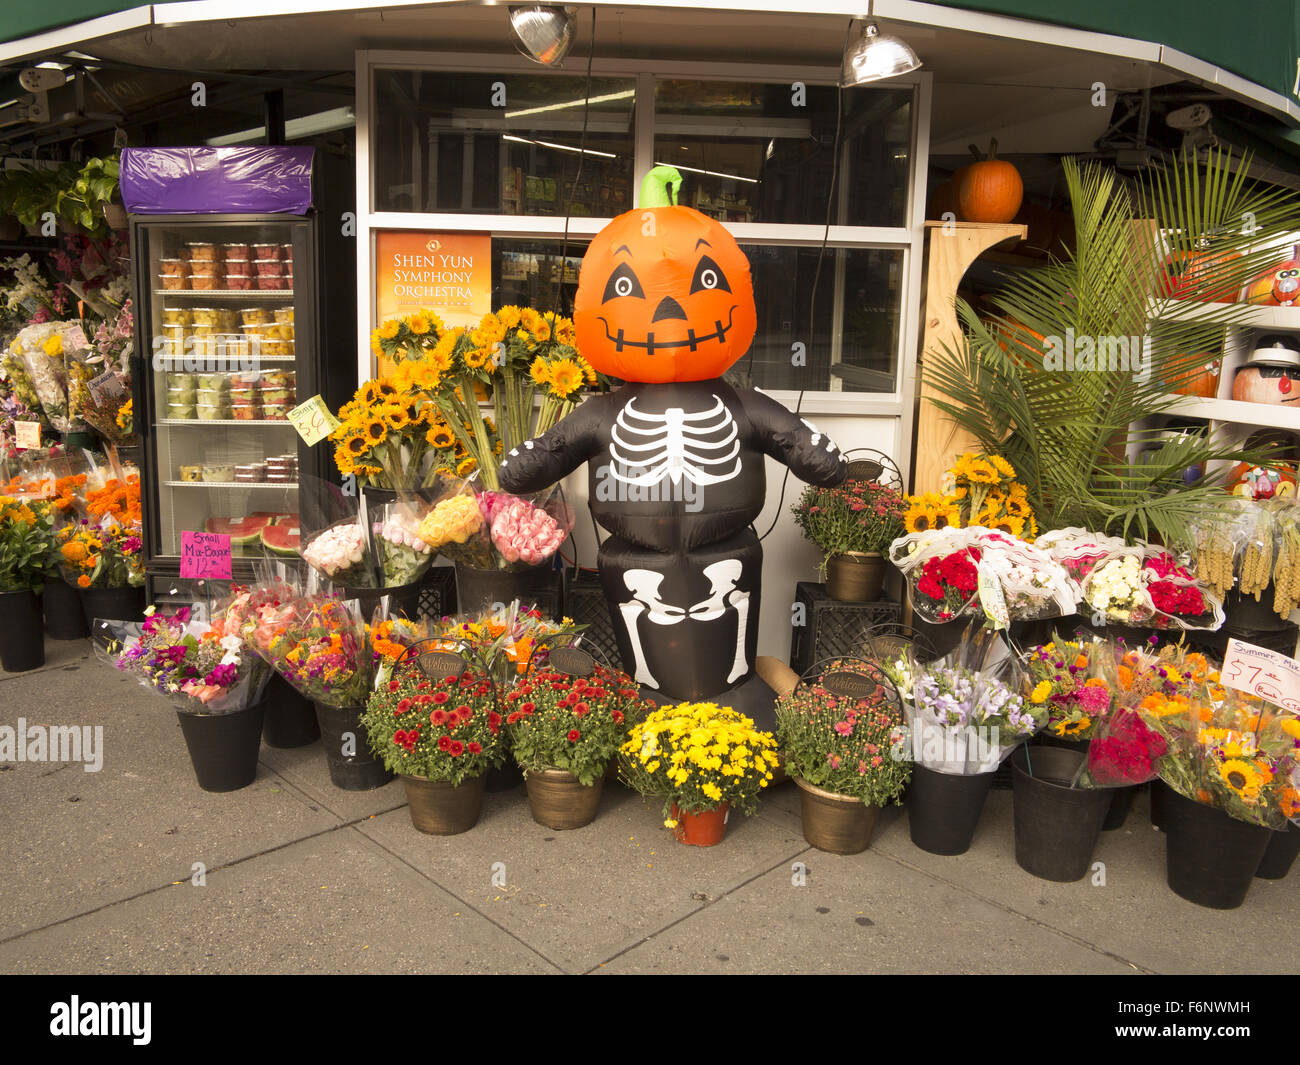 Autumn Flowers And Display At An Independent Grocery Store